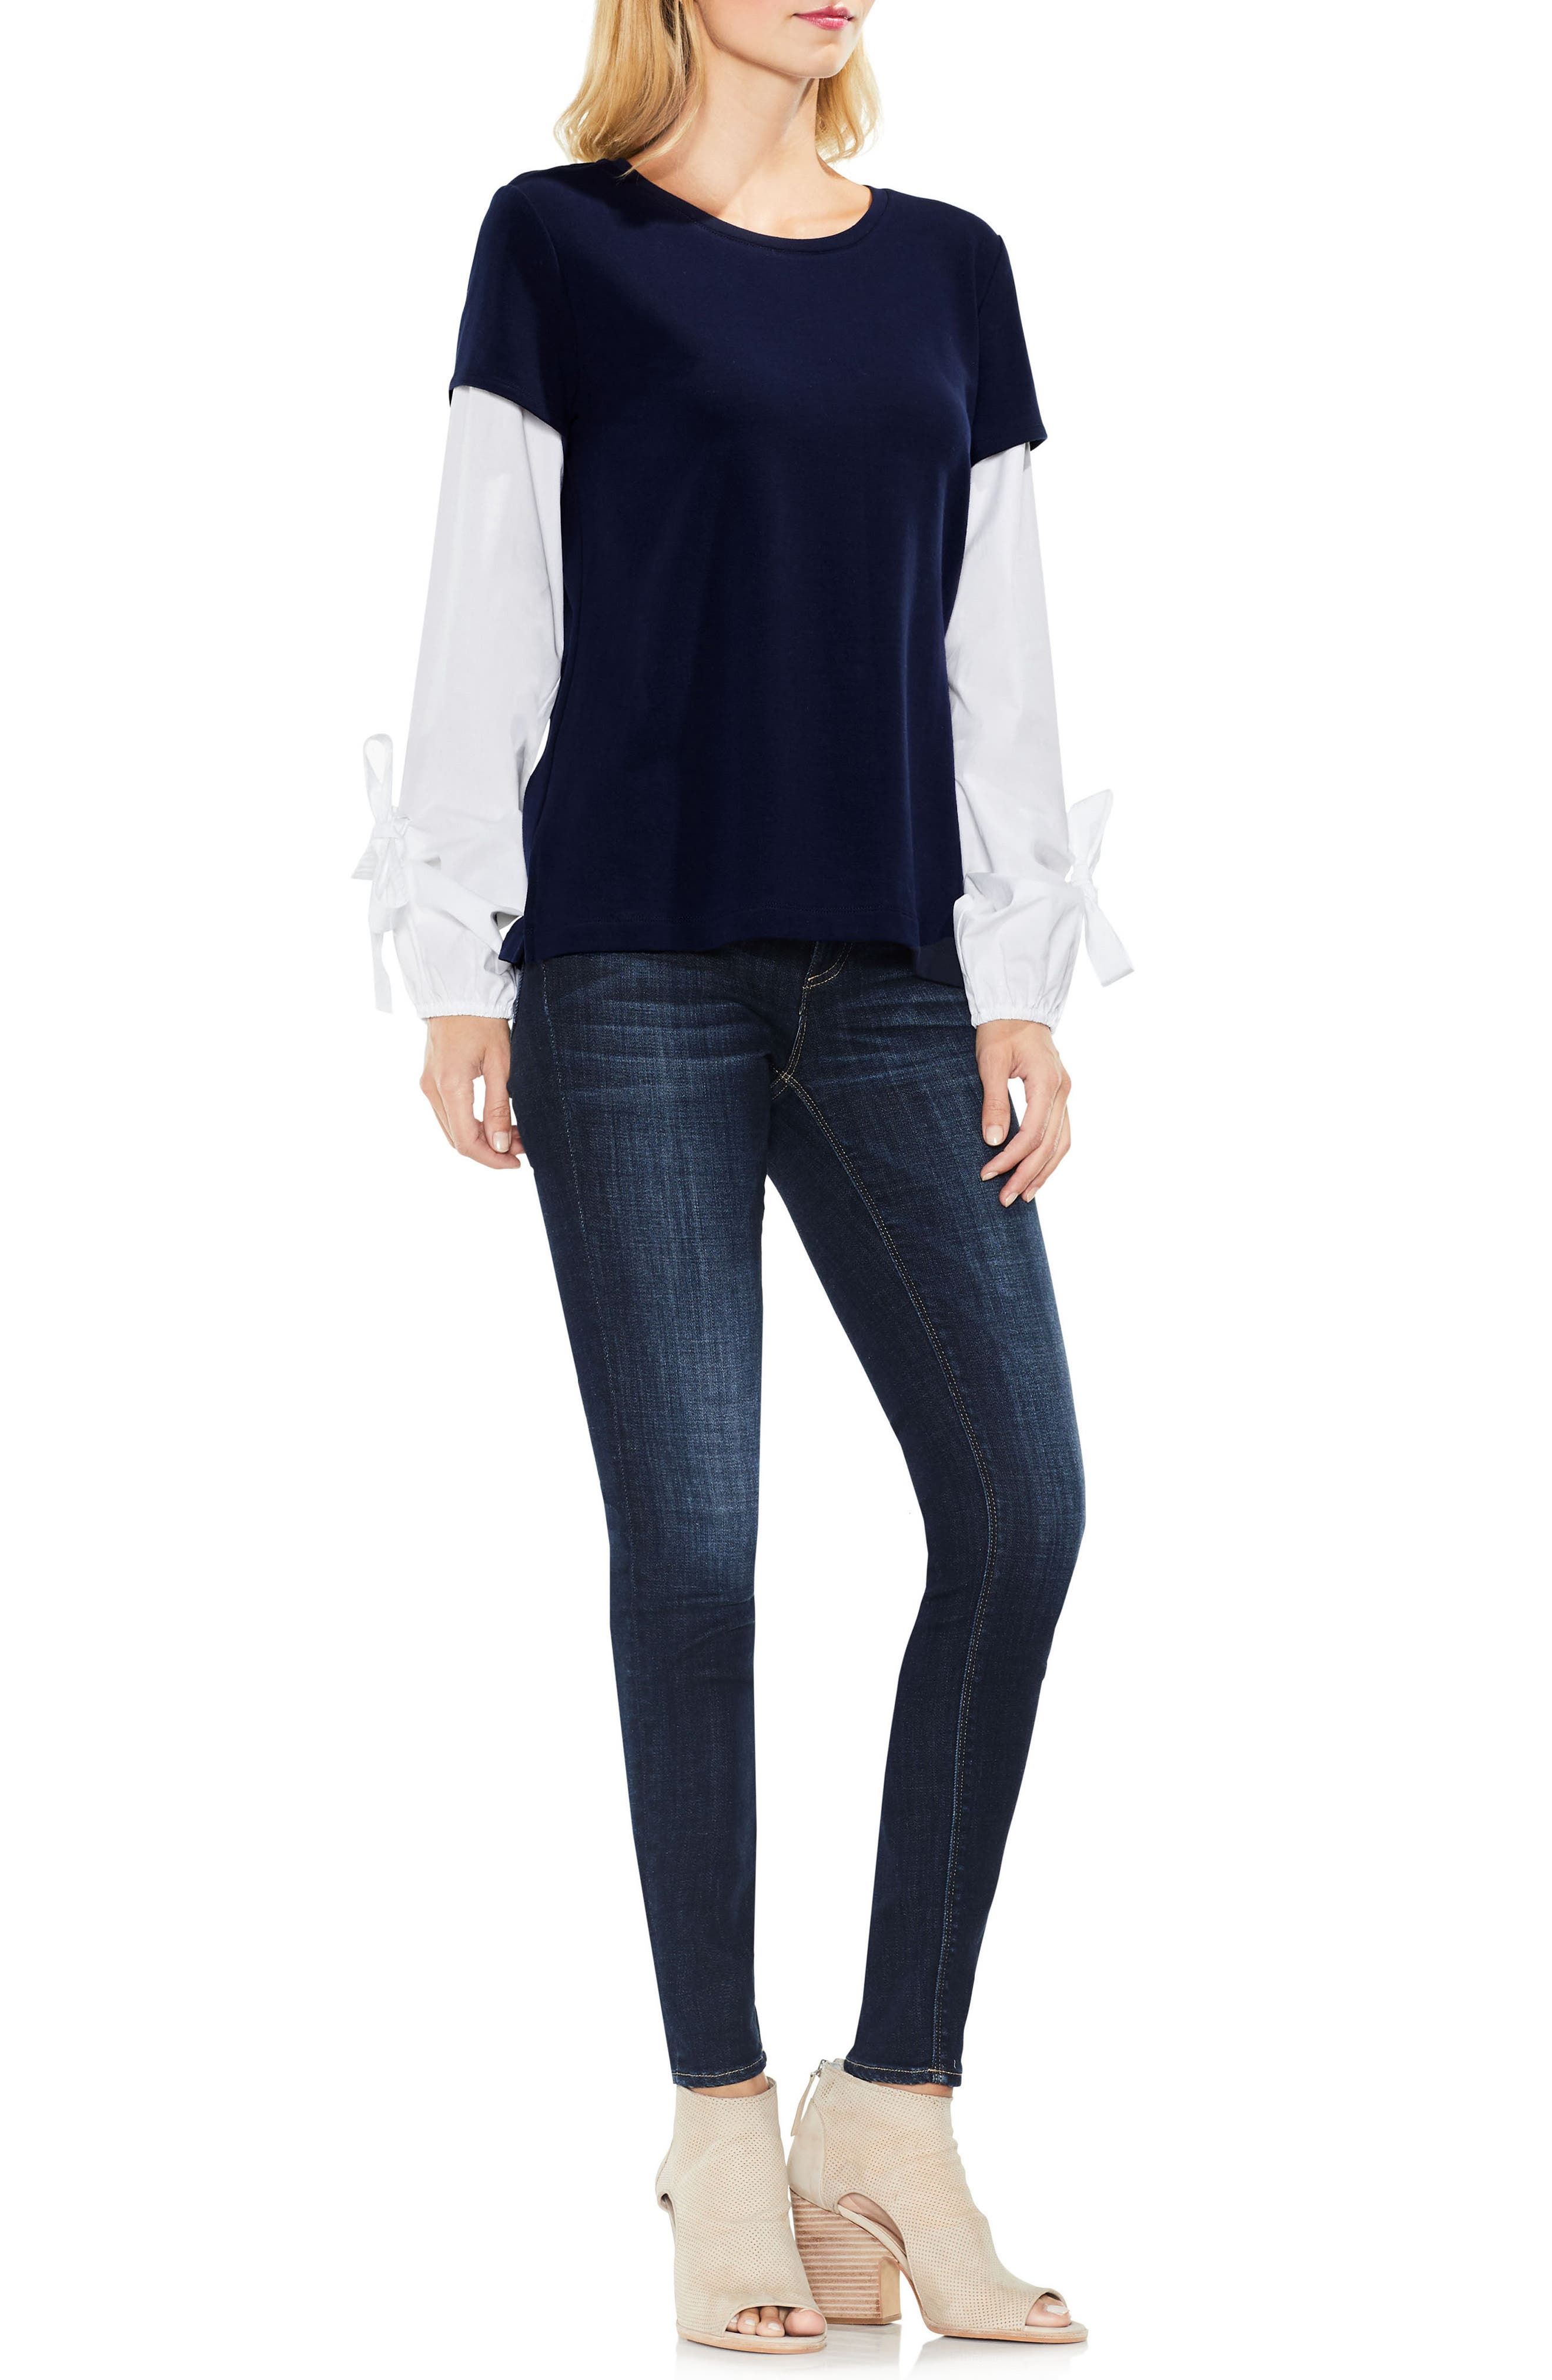 Alternate Image 3  - Two by Vince Camuto Bubble Sleeve Mix Media Top (Regular & Petite)